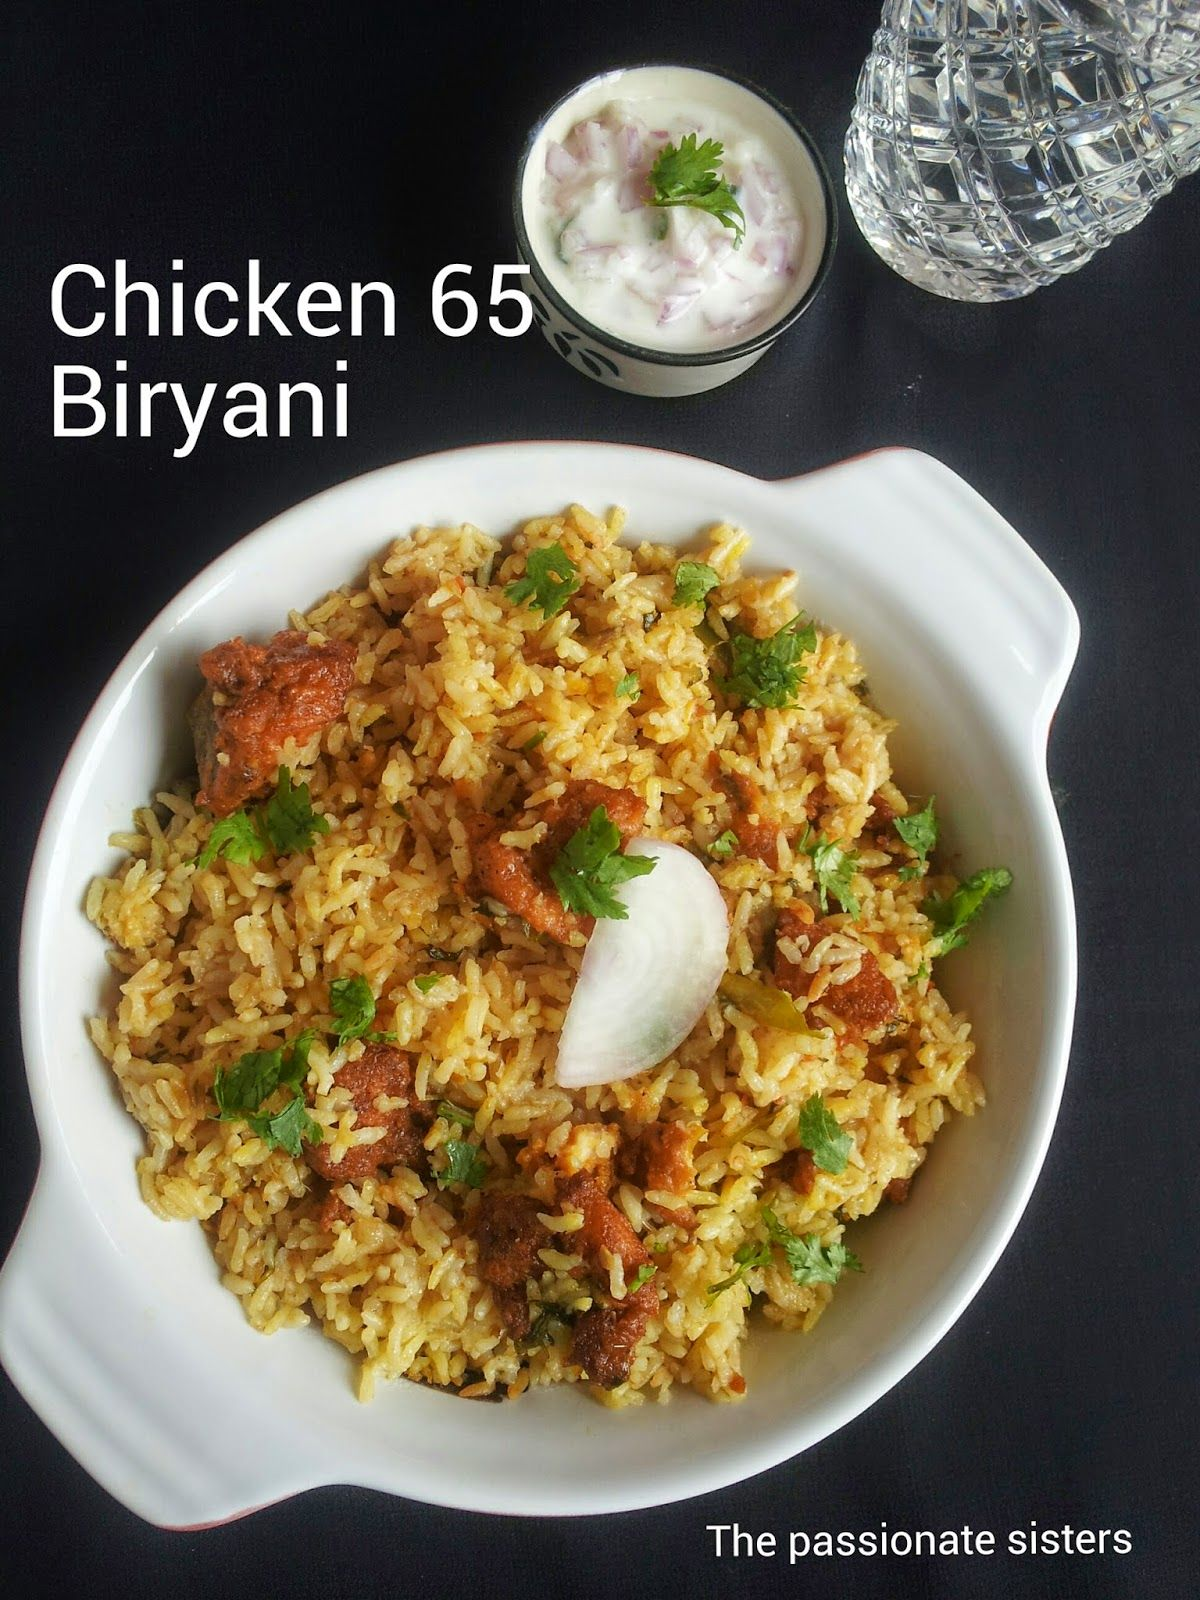 Chicken 65 biryani biryani pinterest biryani rice recipes and i love biryani and chicken 65 biryani is my top most favorite for every other biryani i definitely require a side dish but not for thi forumfinder Images